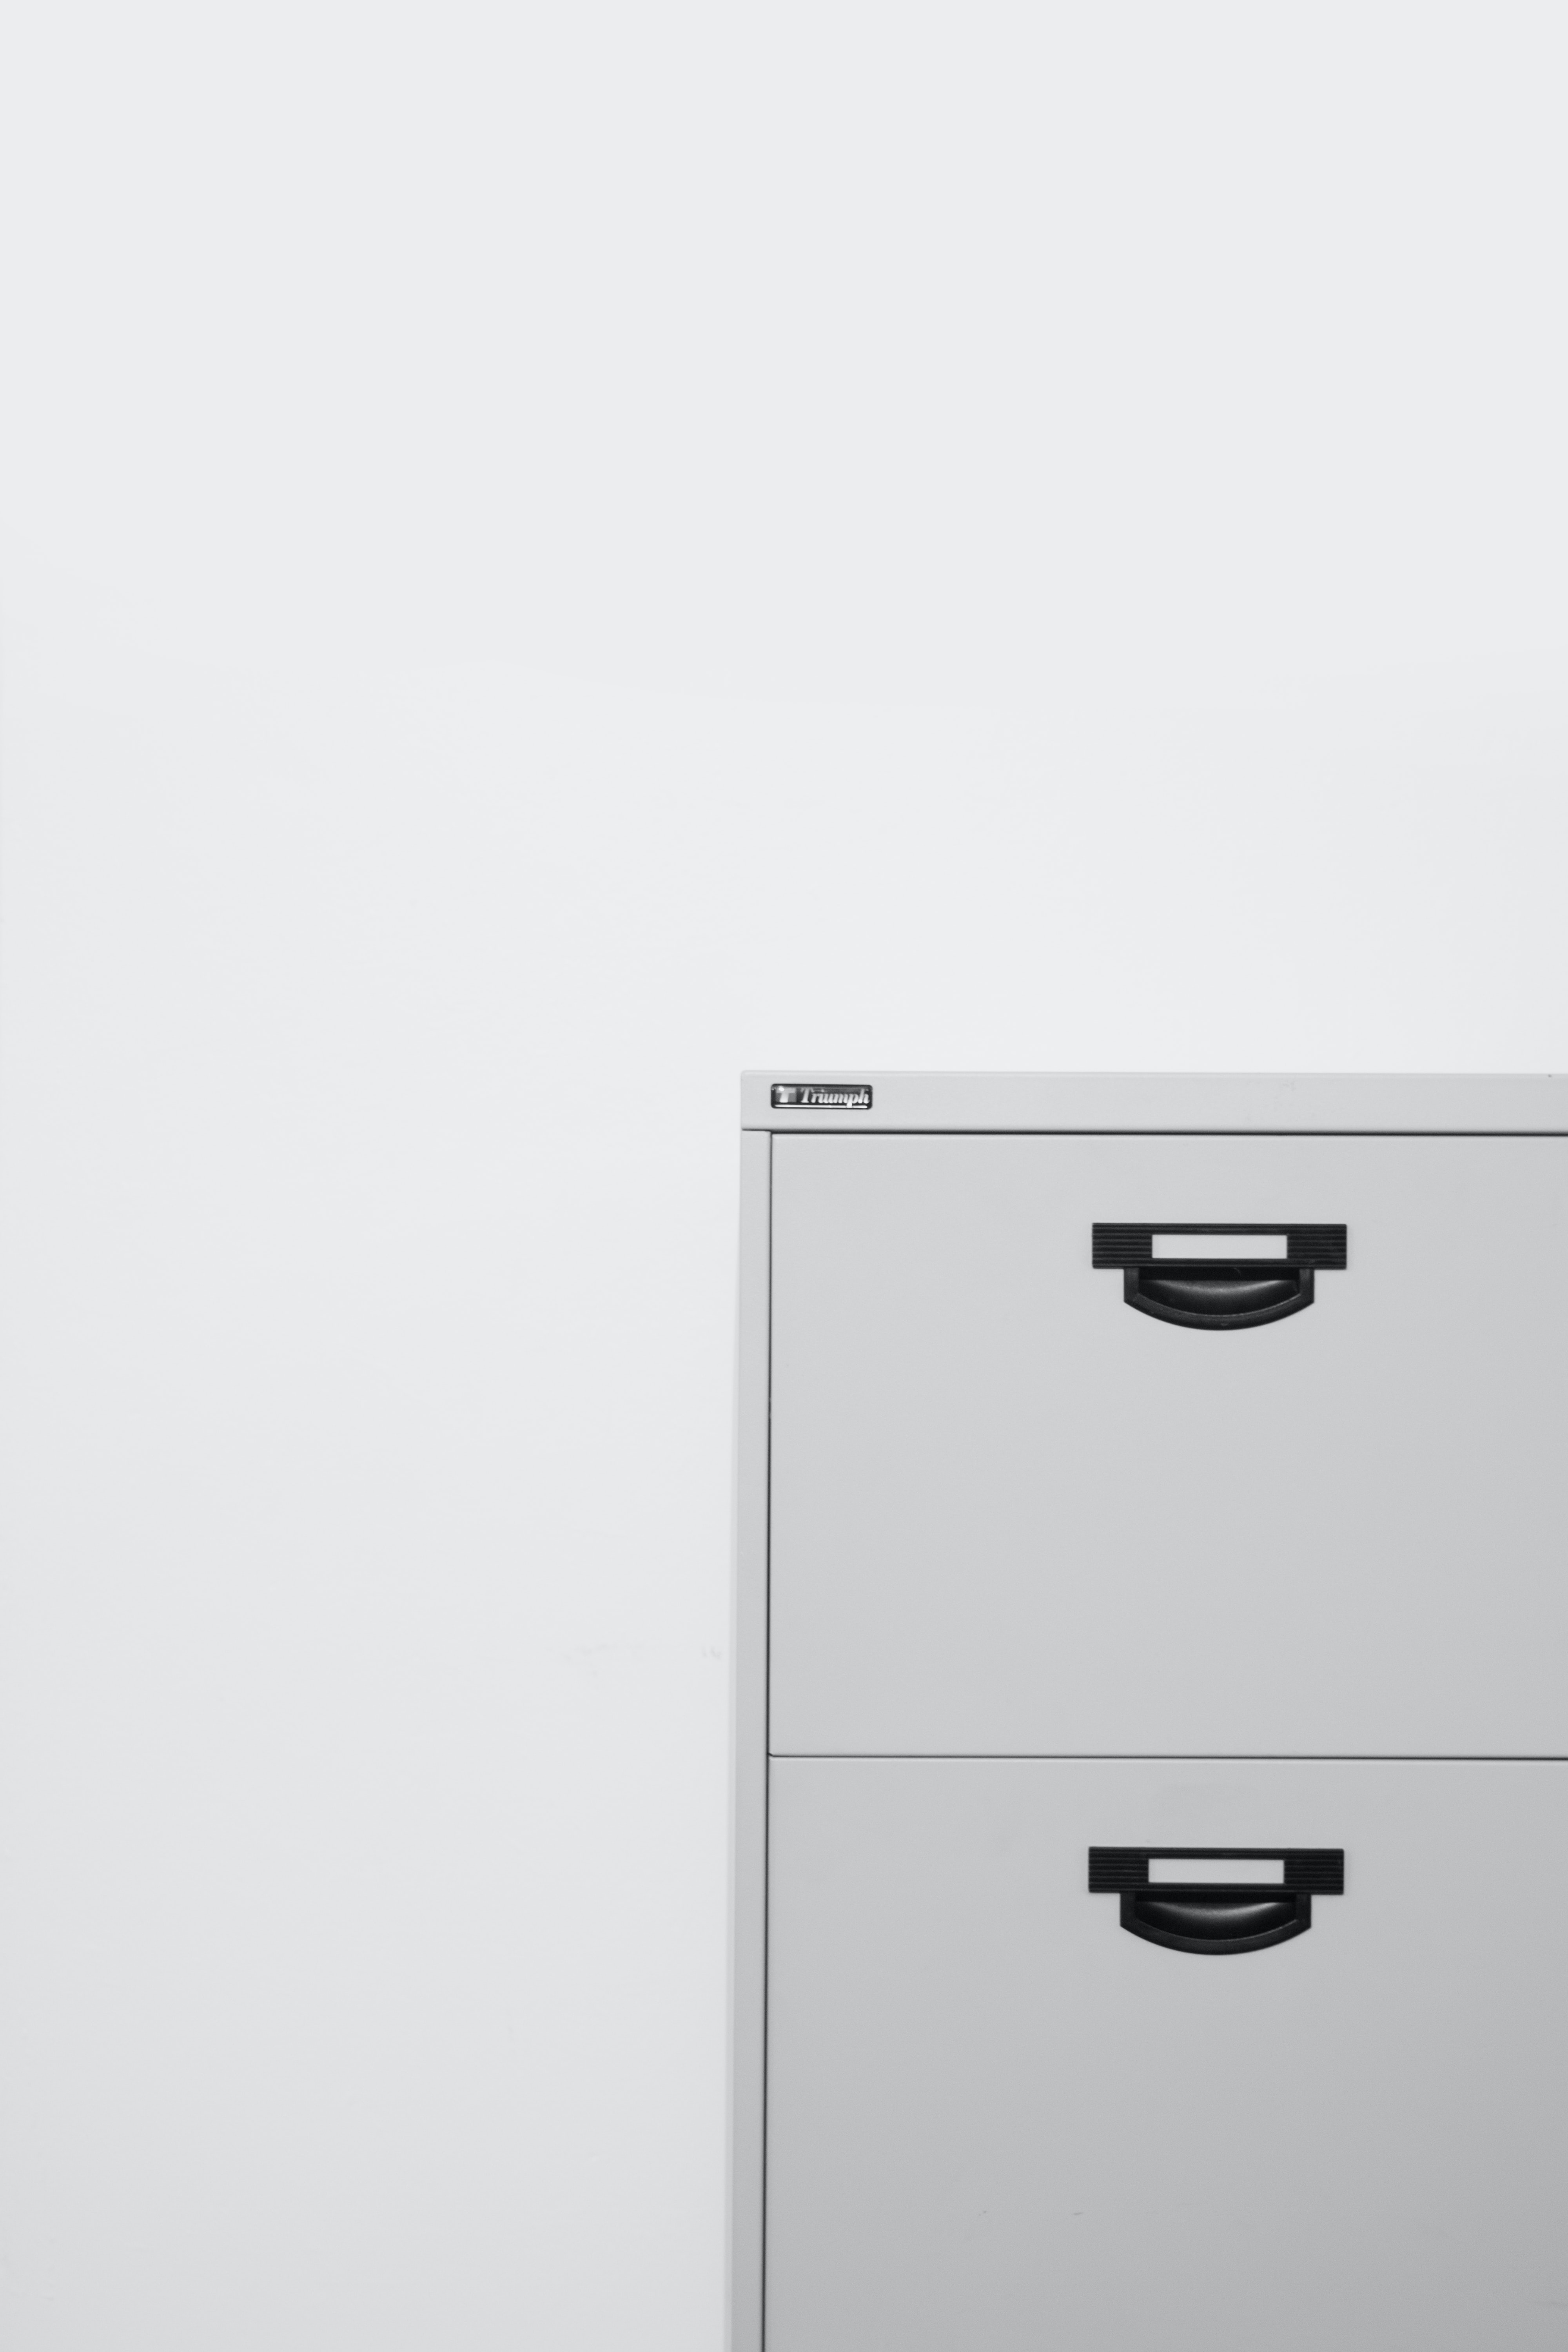 A white filing cabinet in front of a white wall.